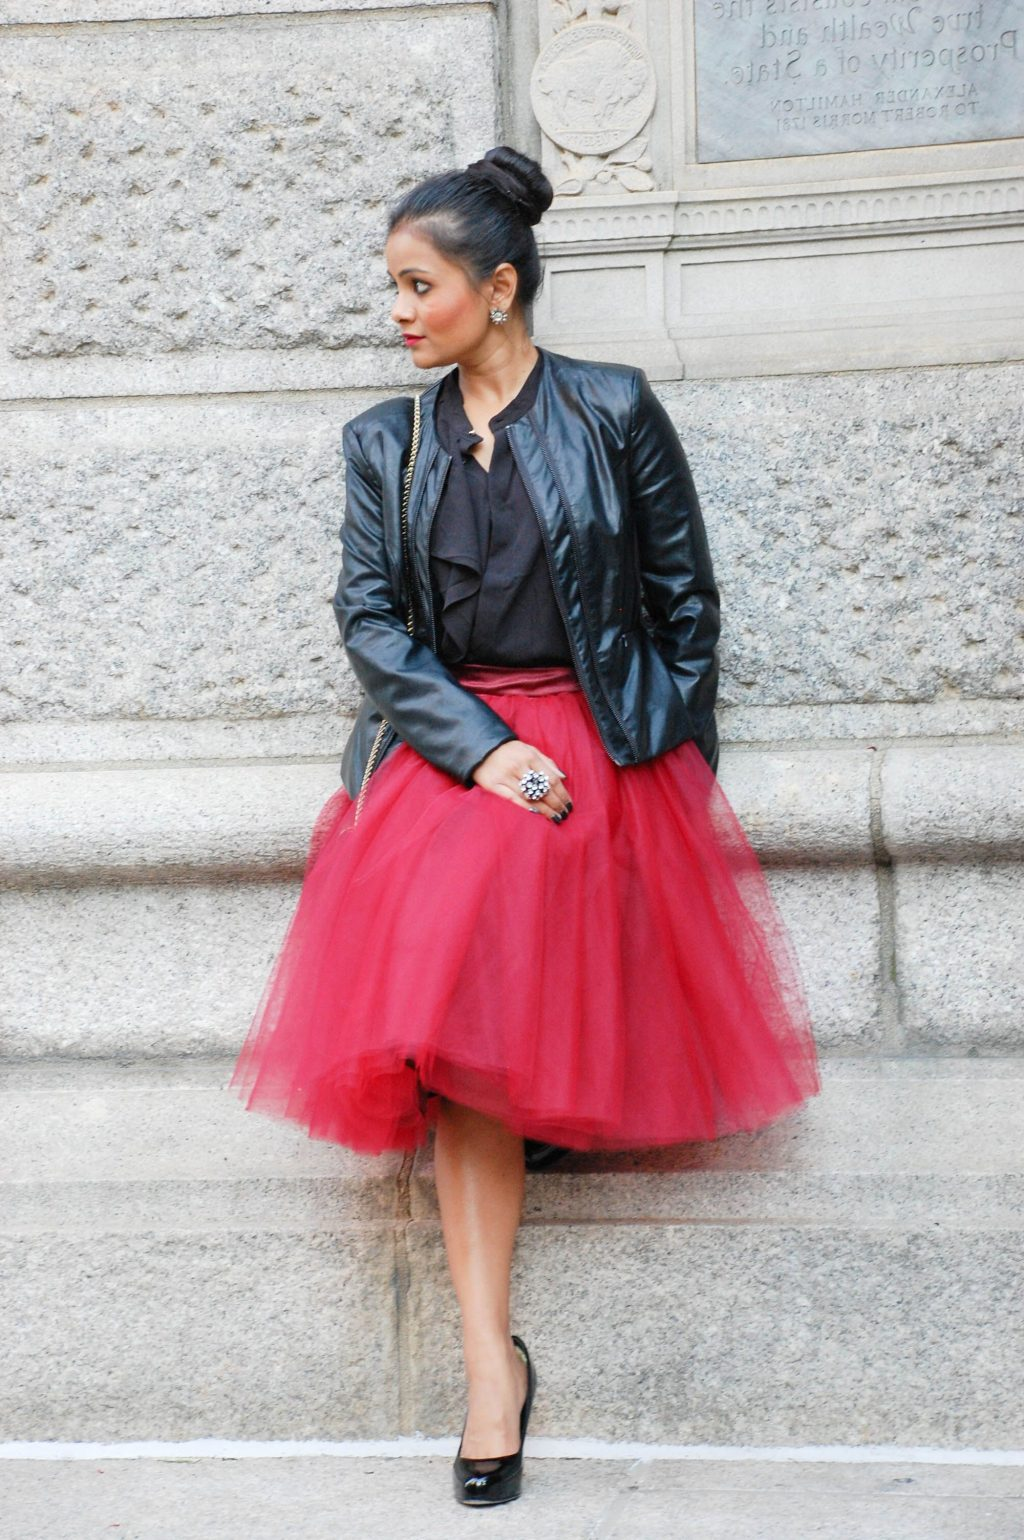 67bf298429 Tulle Skirts Best Outfit Ideas 2019 – WardrobeFocus.com